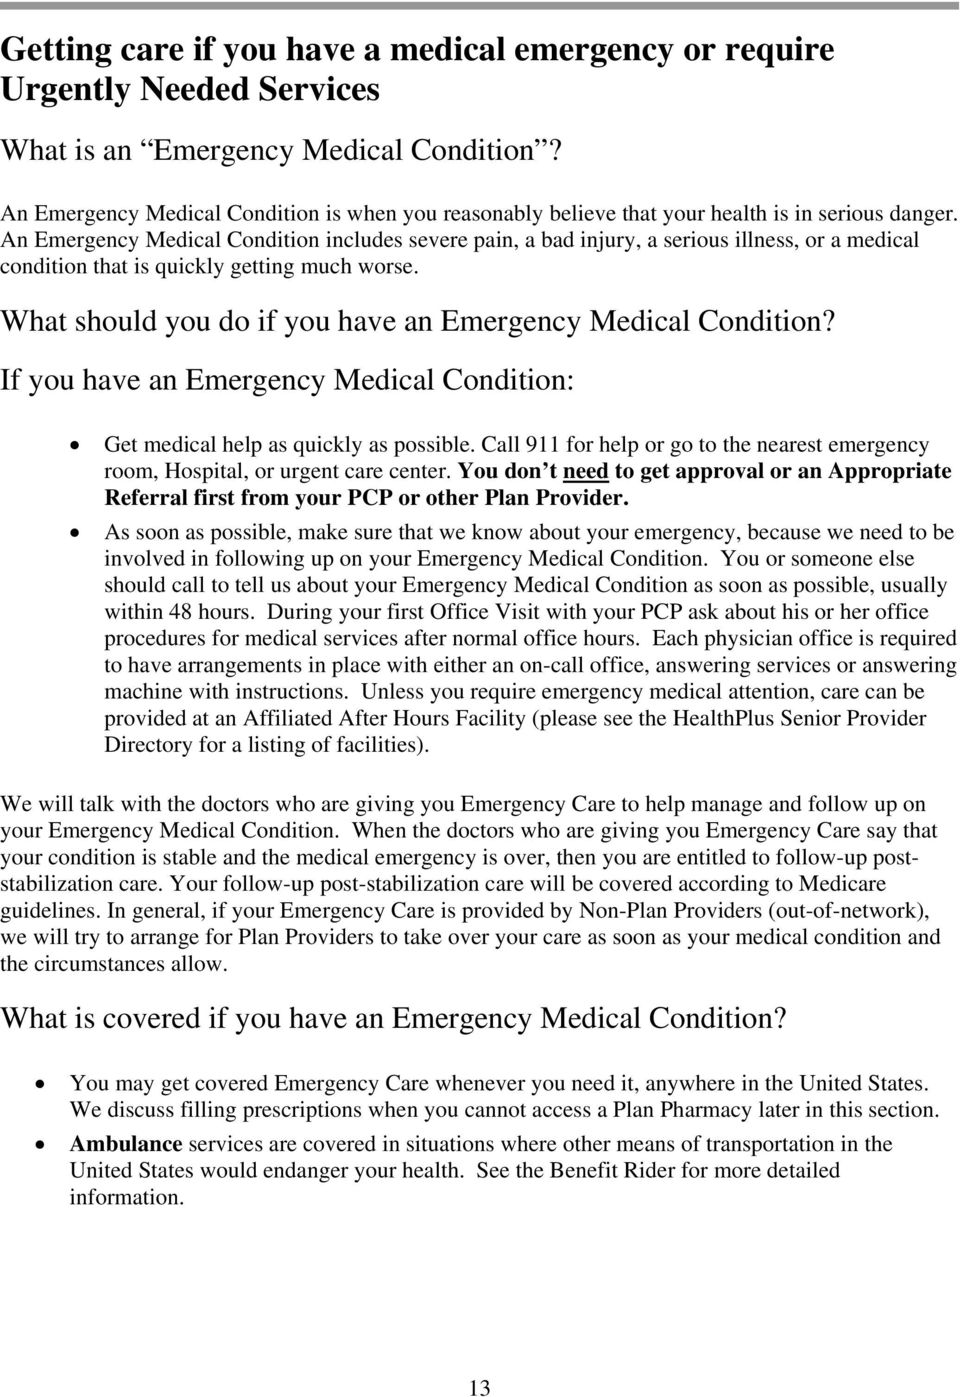 An Emergency Medical Condition includes severe pain, a bad injury, a serious illness, or a medical condition that is quickly getting much worse.